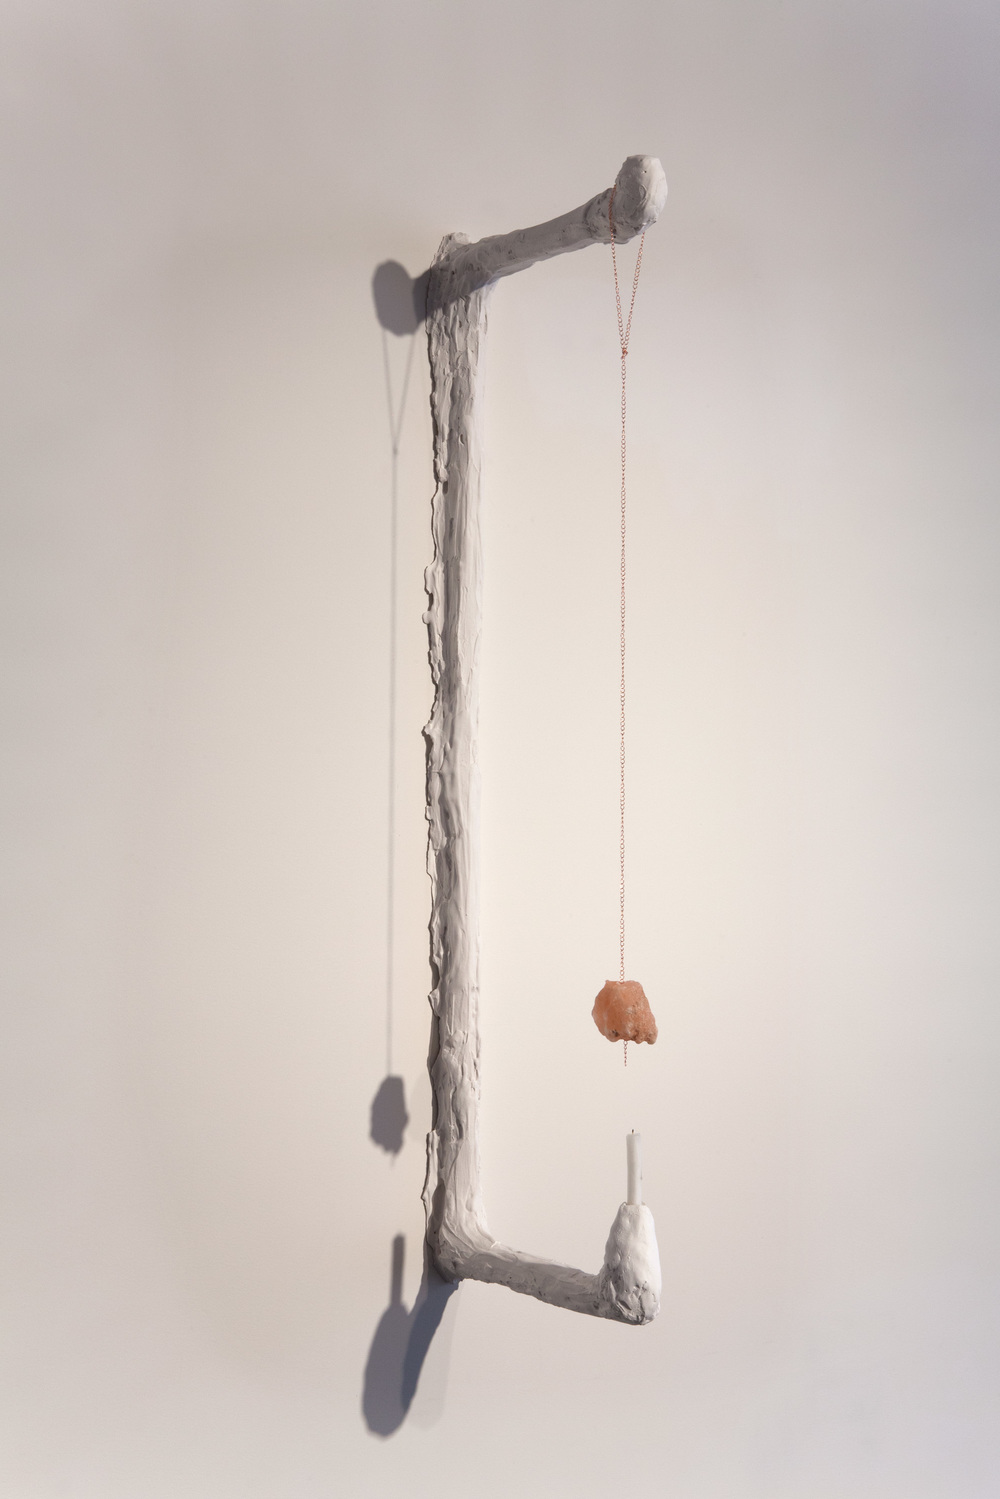 Kathryn O'Halloran,  Rock Salt Scone,  2015, plaster, chain, Himalayan rock salt